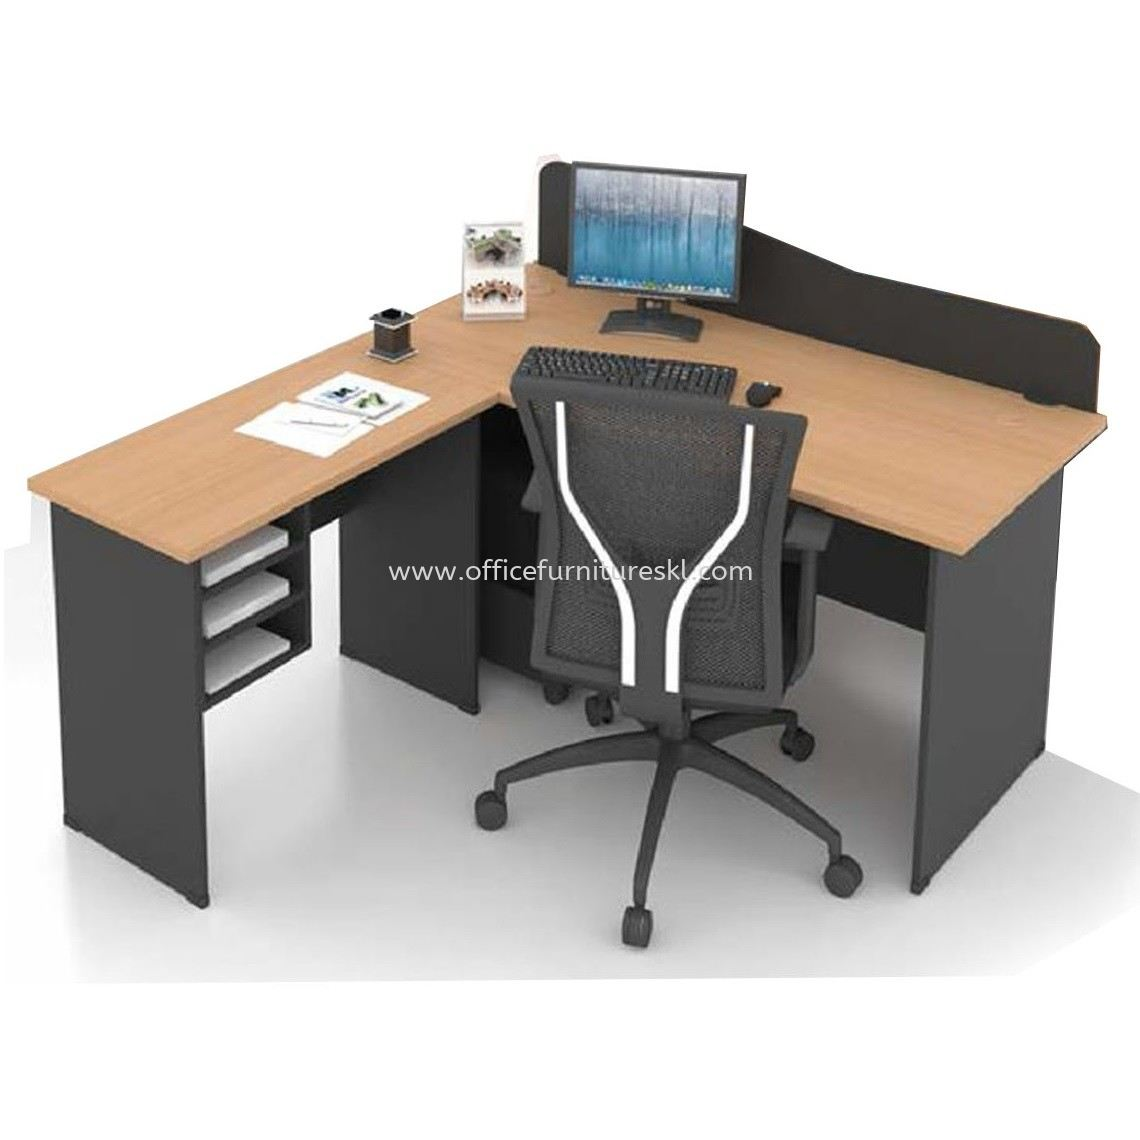 FOBIES 5 FEET OFFICE TABLE WITH PARTITION BOARD C/W SIDE TABLE & RETURN RACK SET - Office Table Batu Caves | Office Table Kepong | Office Table Serdang | Office Table Balakong